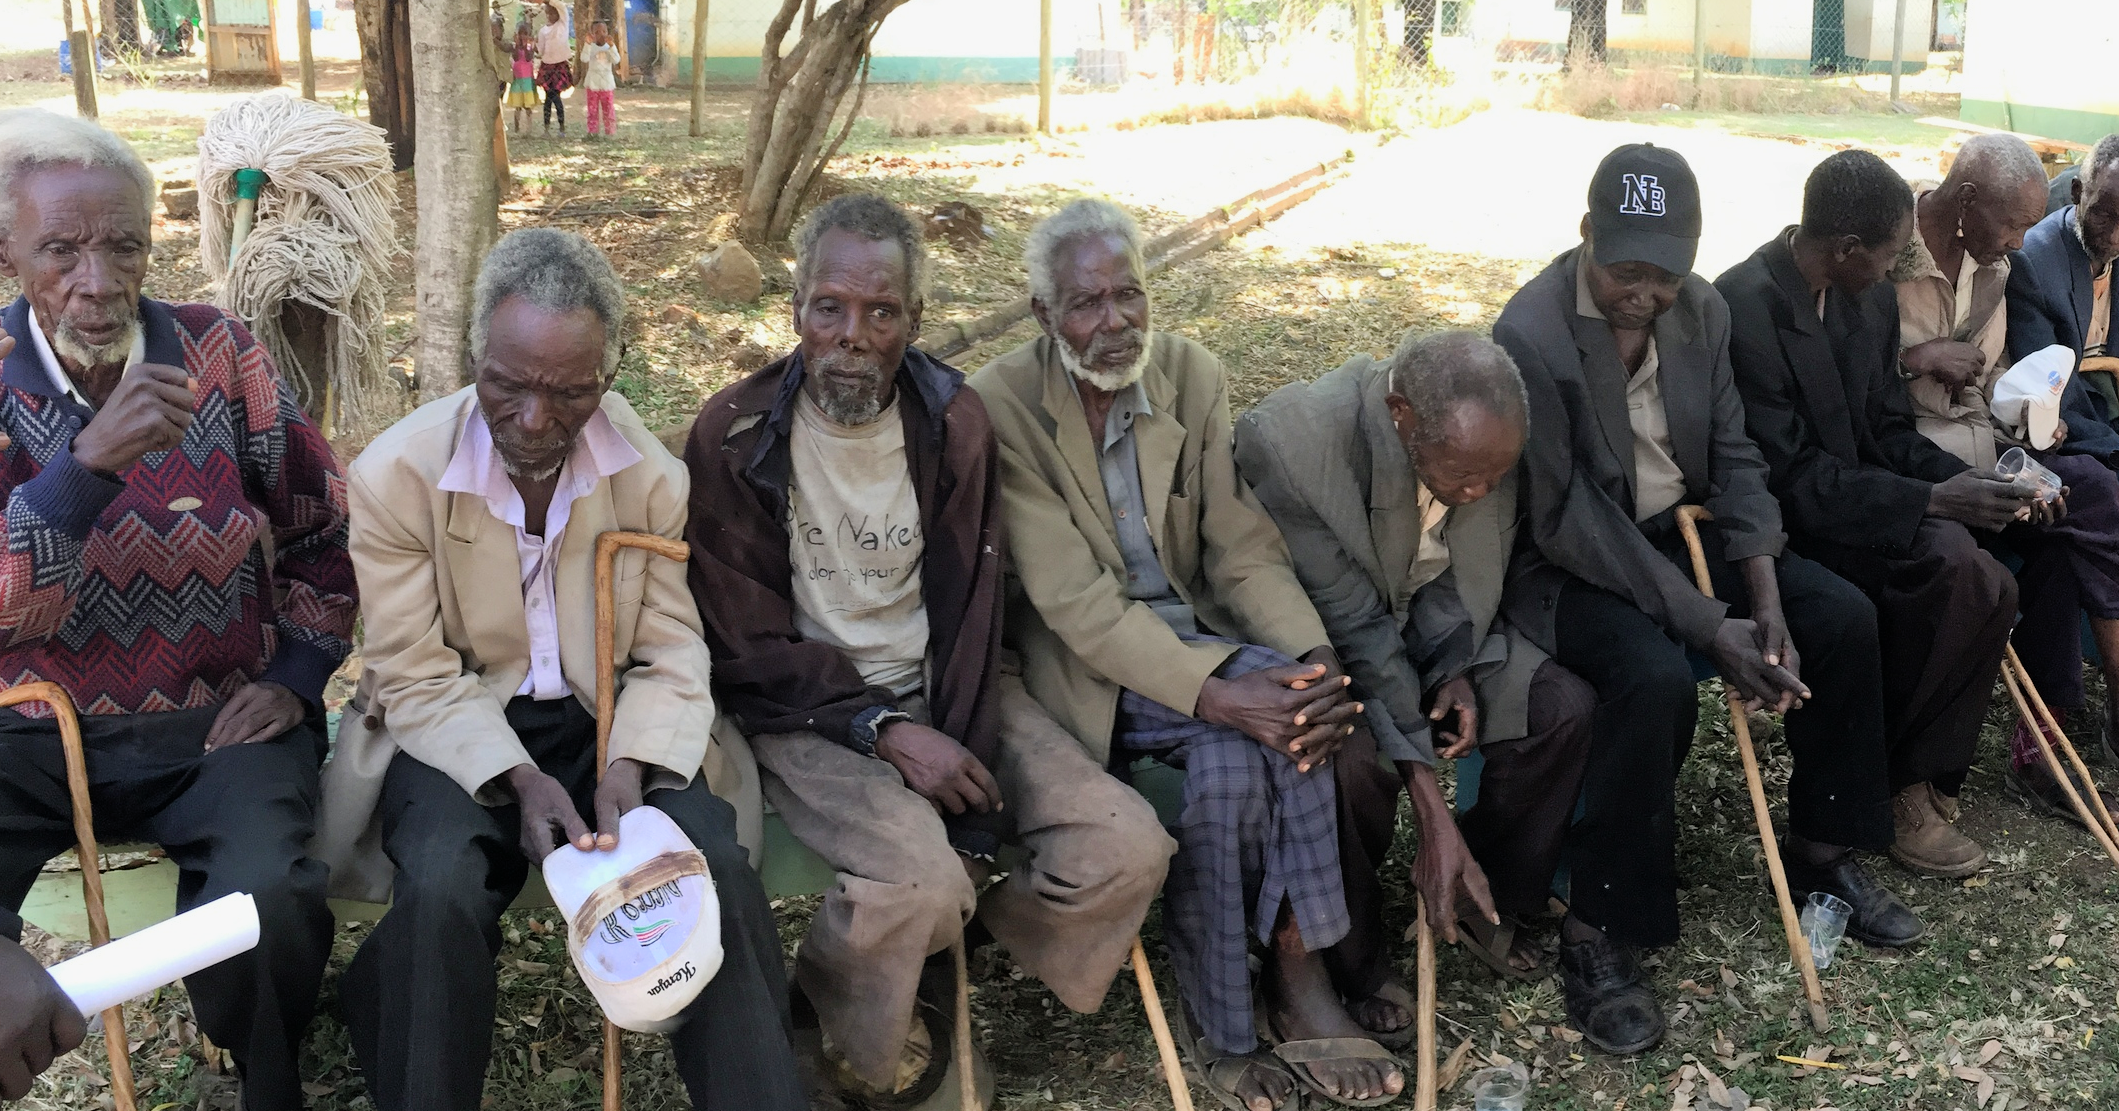 Cataract surgery patients lined up waiting to have their post-op check-up.